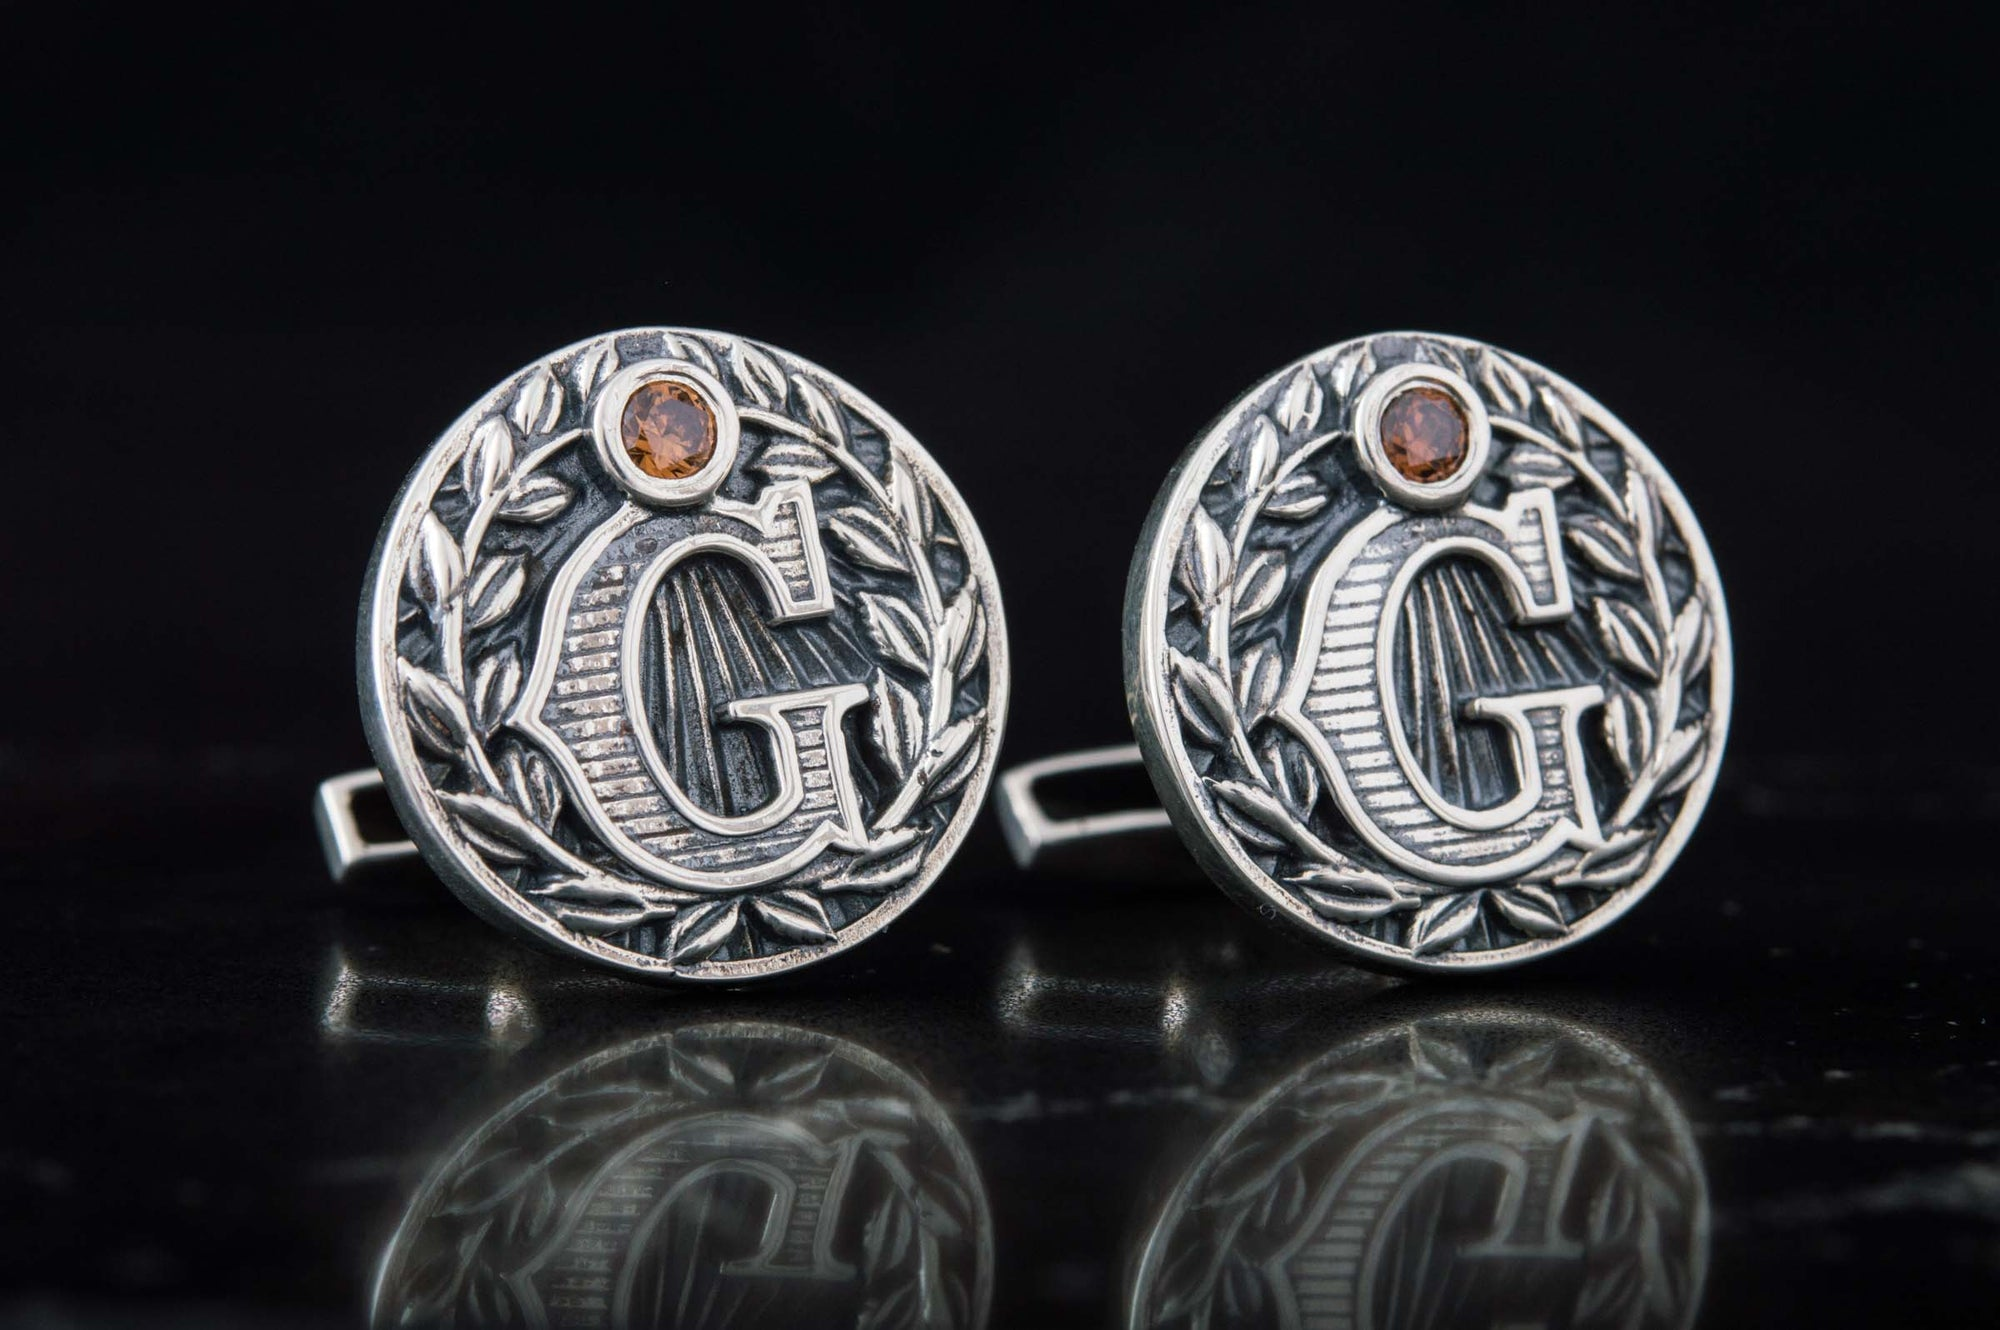 Cufflinks Masonic Letter G Sterling Silver Handmade Cufflinks Ancient Treasures Ancientreasures Viking Odin Thor Mjolnir Celtic Ancient Egypt Norse Norse Mythology